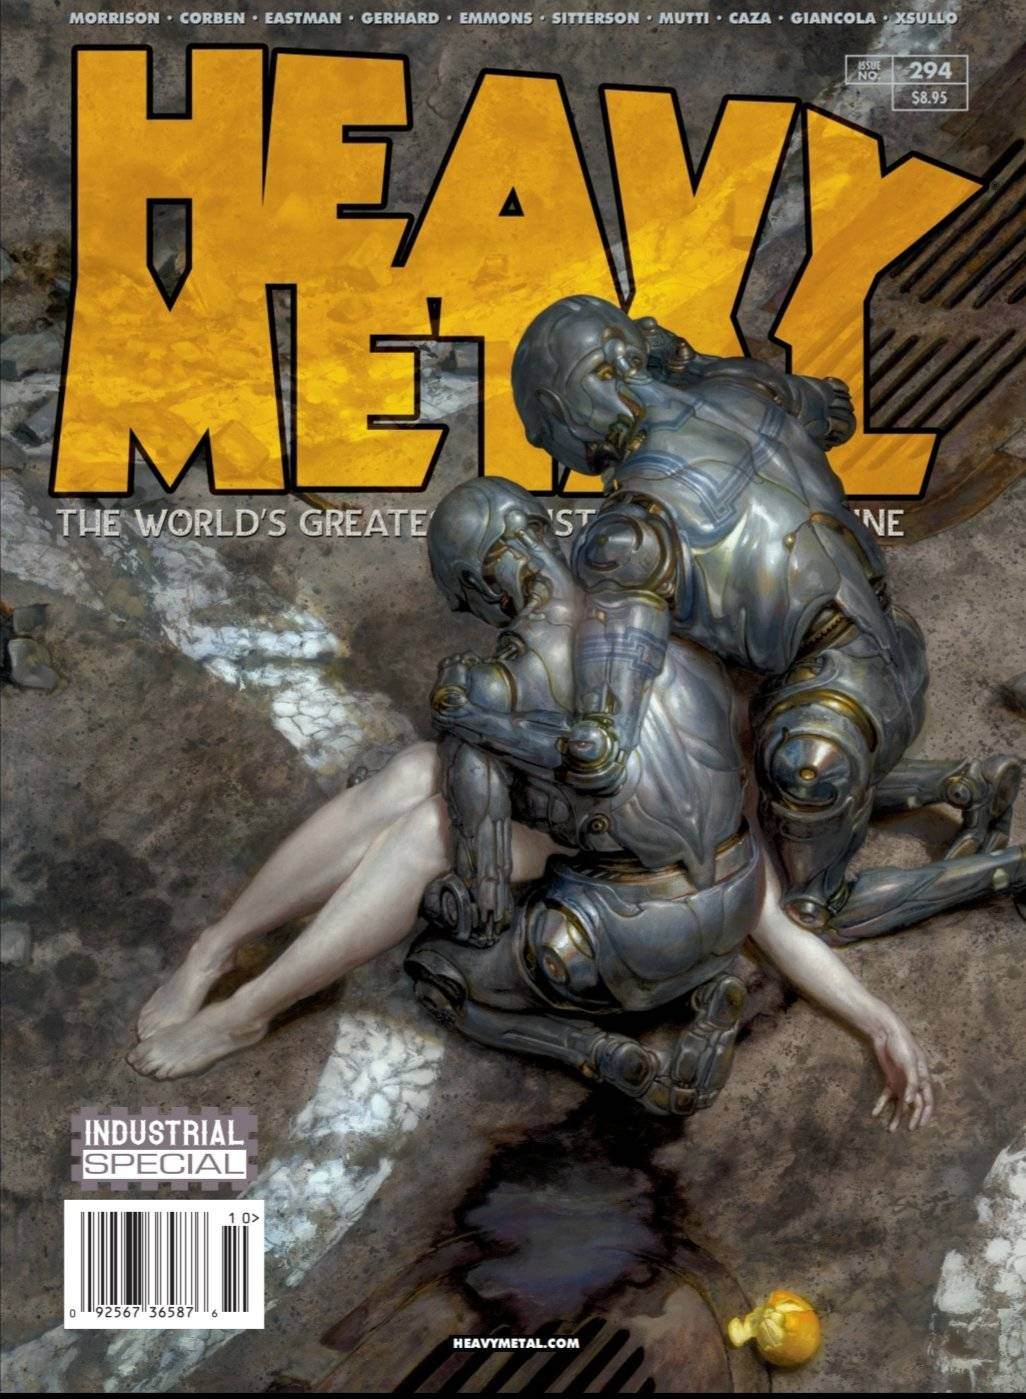 HEAVY METAL #293